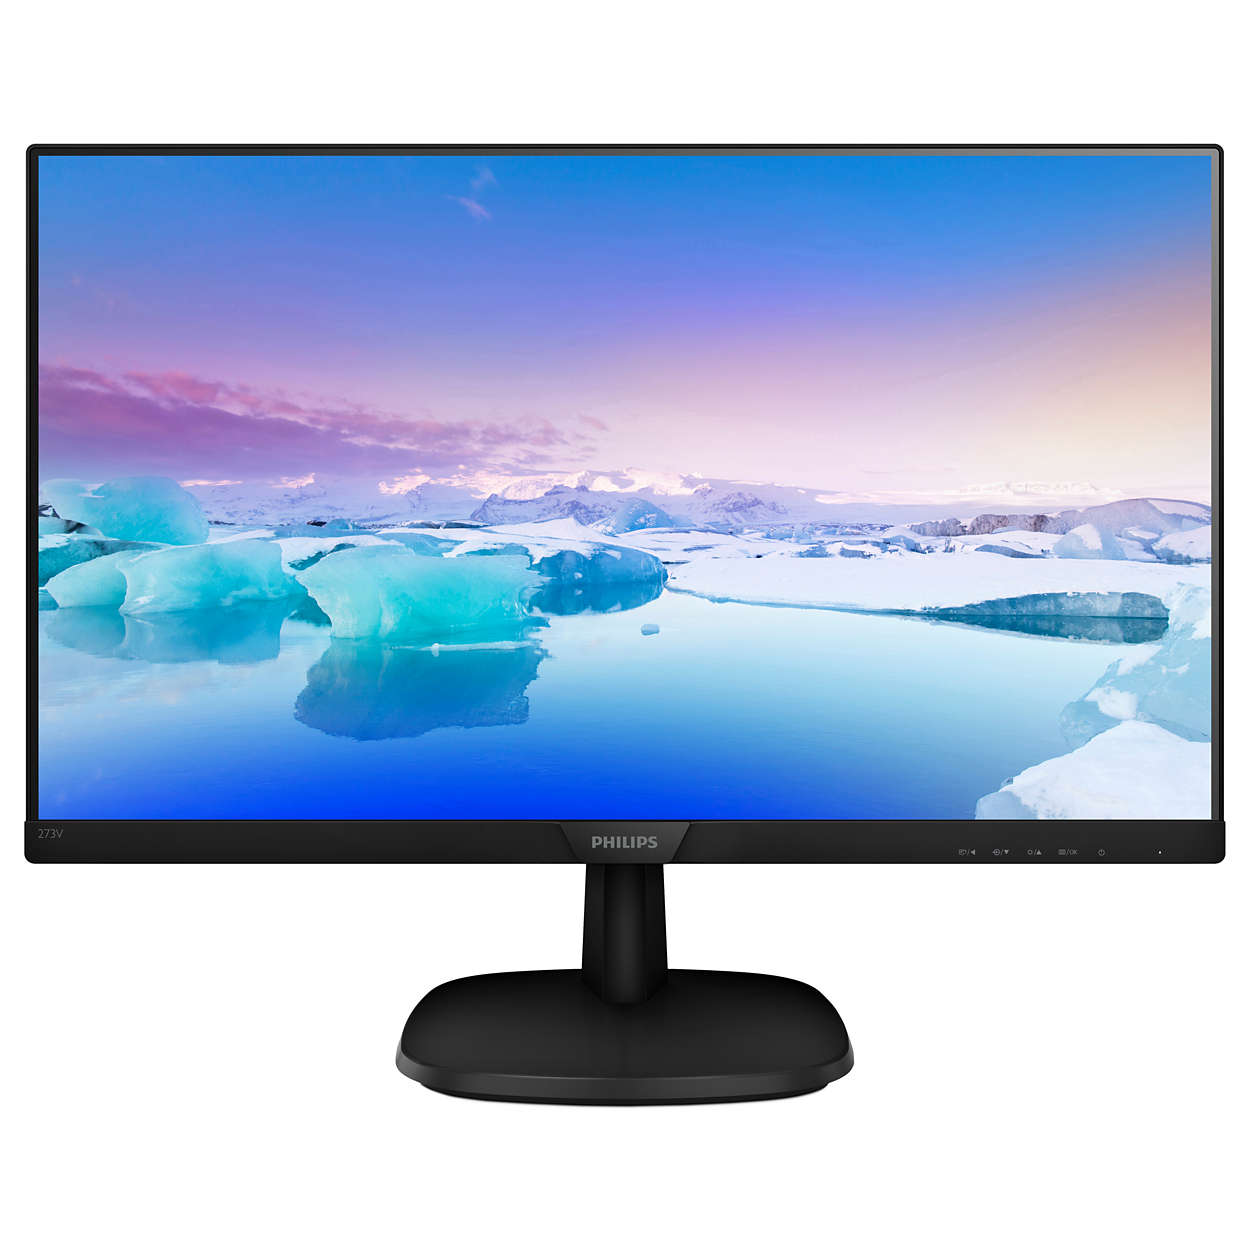 Monitor Philips 273V7QSB/00 27'', panel-IPS; FullHD; D-Sub, DVI